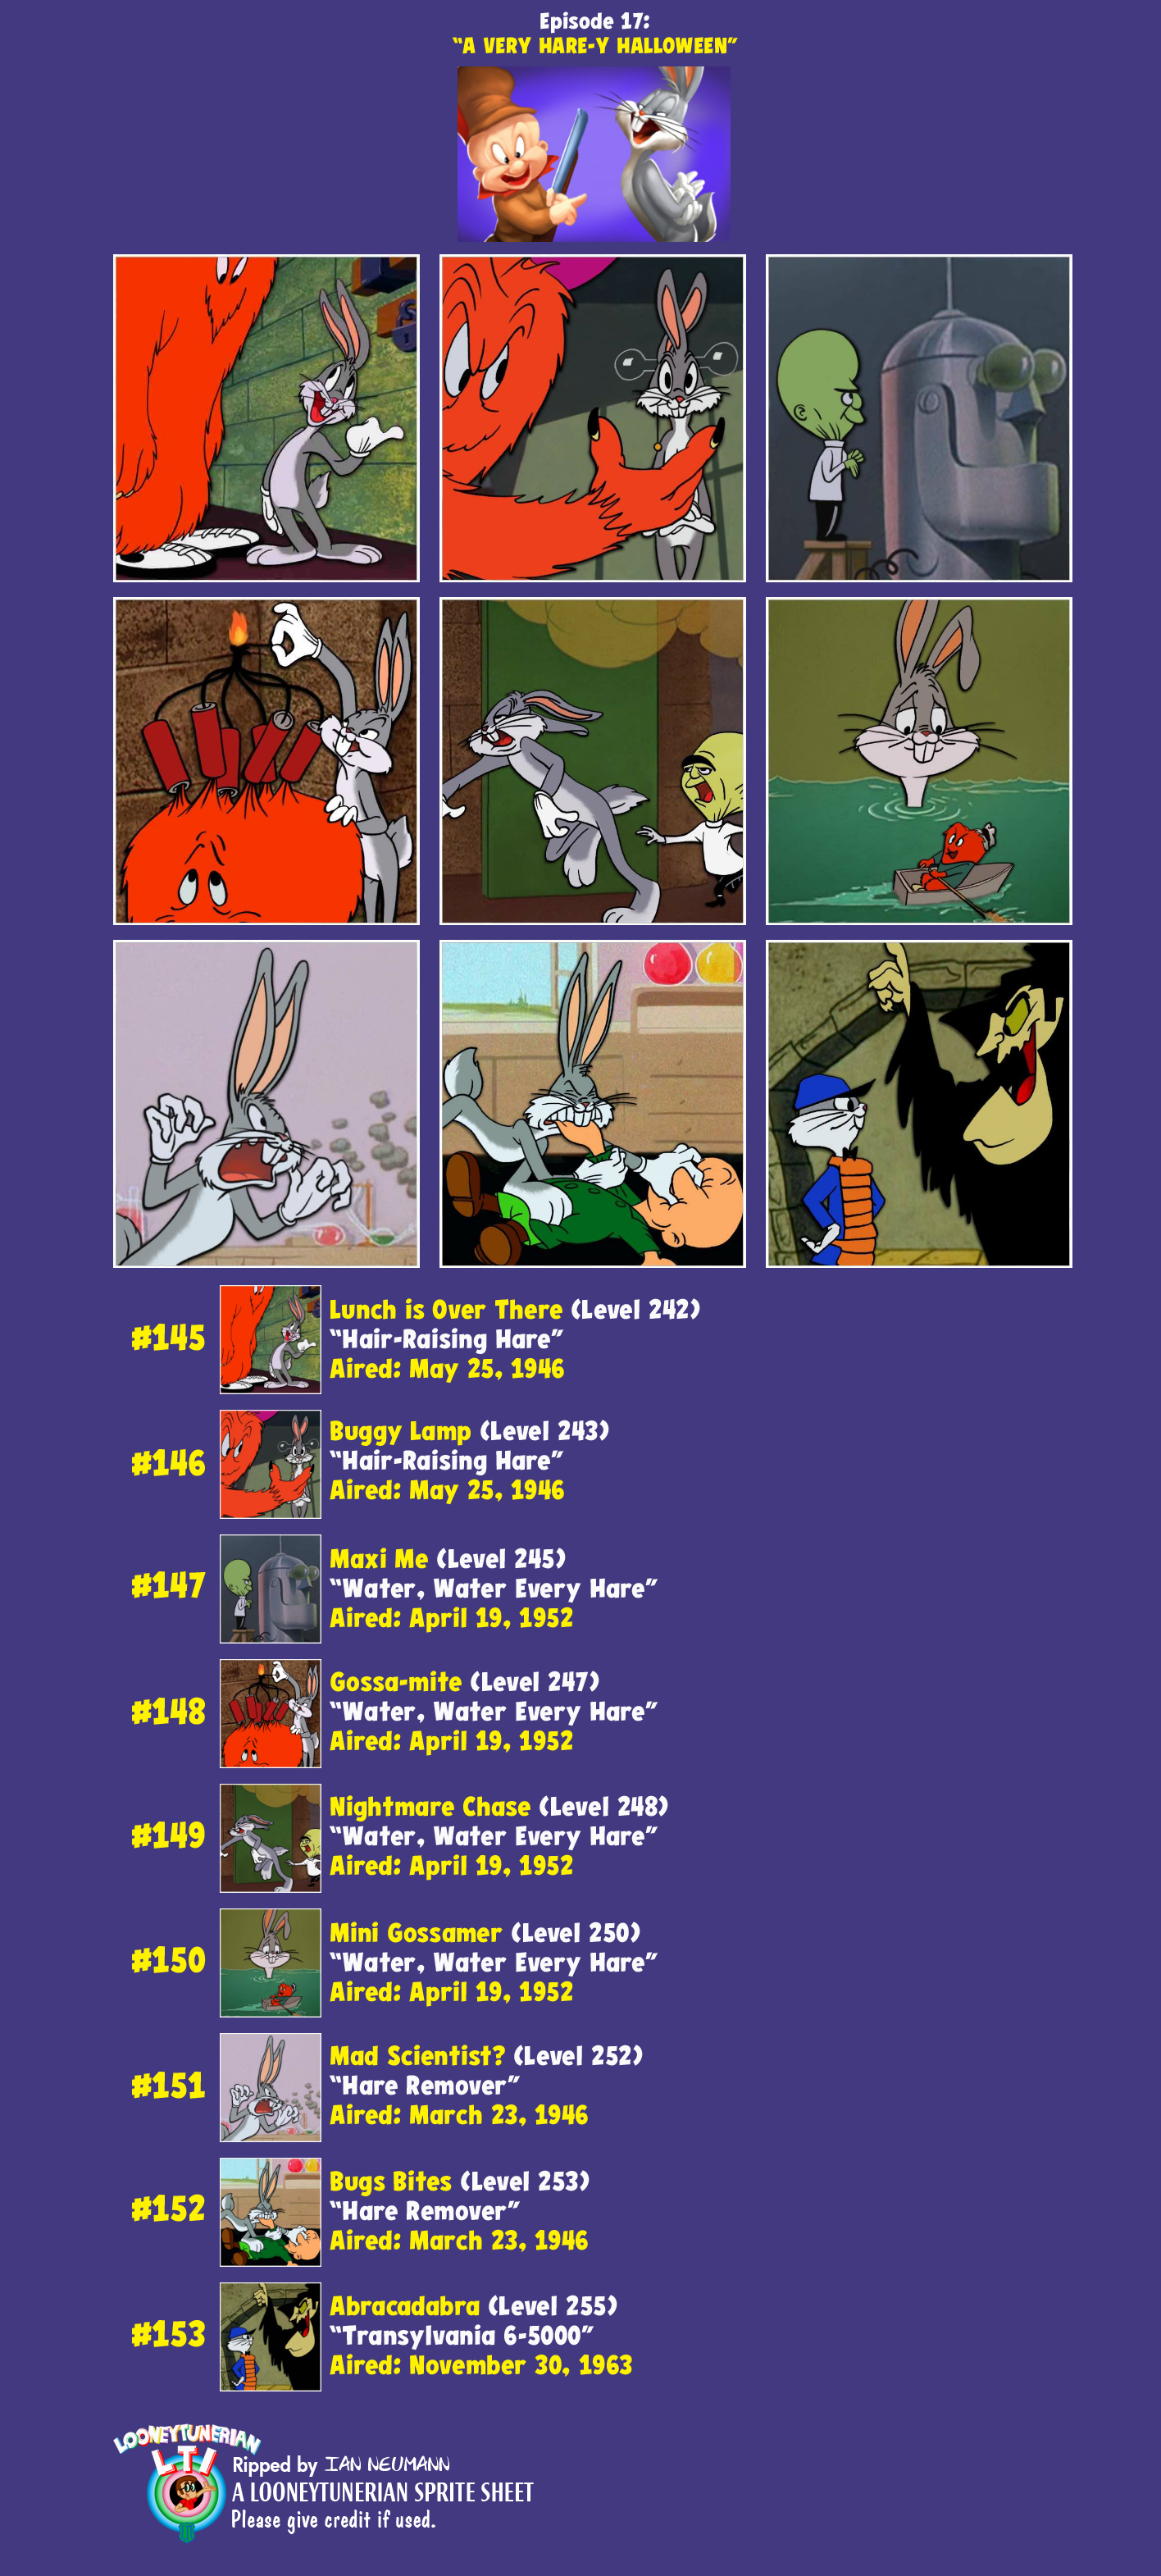 "mobile - looney tunes dash! - episode 17: ""a very hare-y halloween"